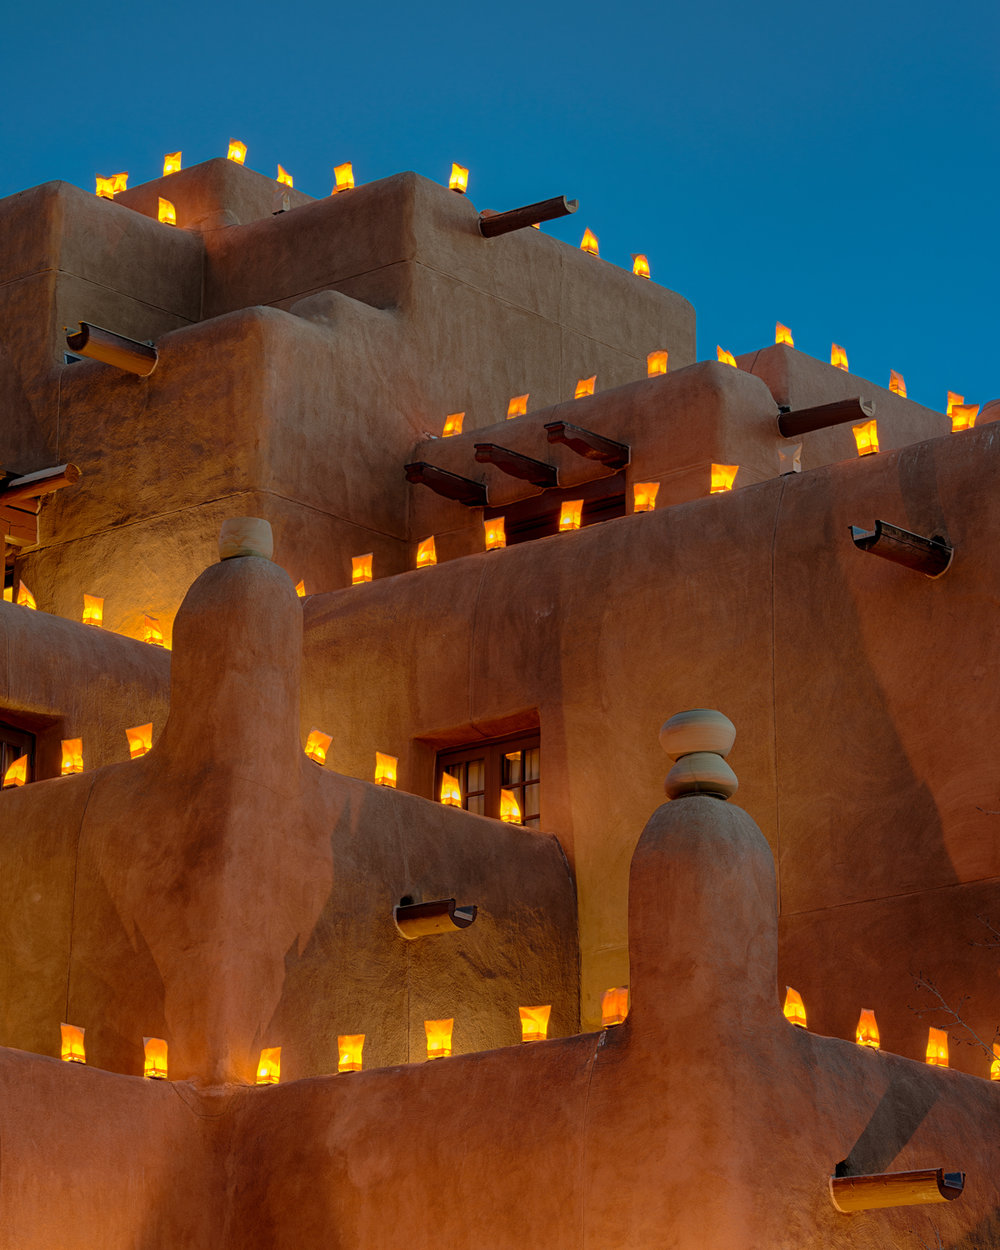 Luminarias in Santa Fe, New Mexico